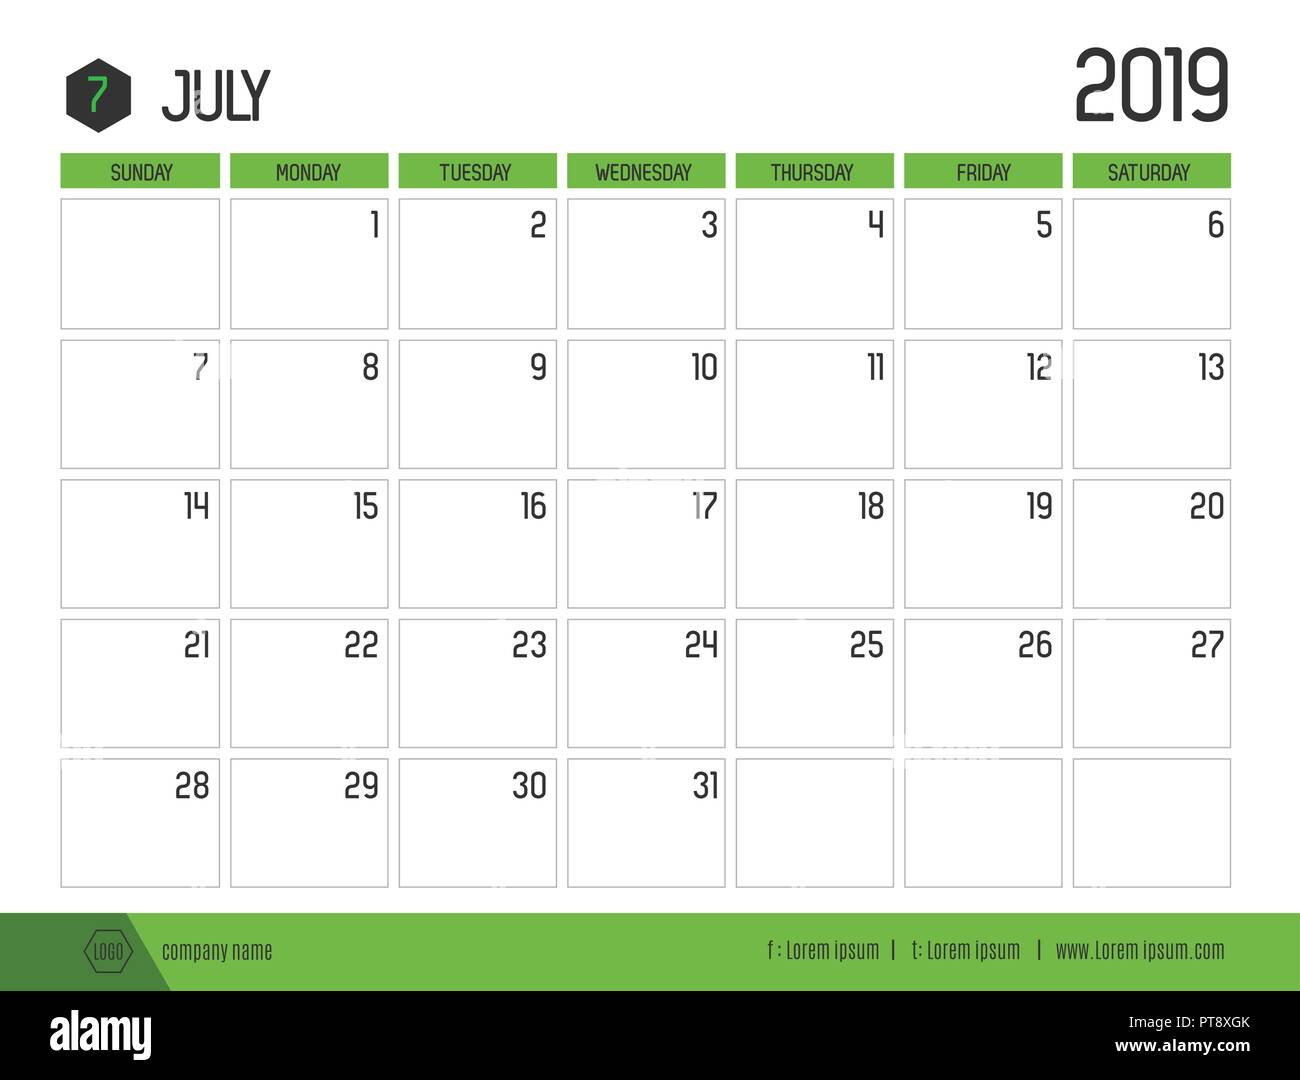 Calendario 2019 Julio.Vector De Verde Moderno Calendario 2019 Julio En Simple